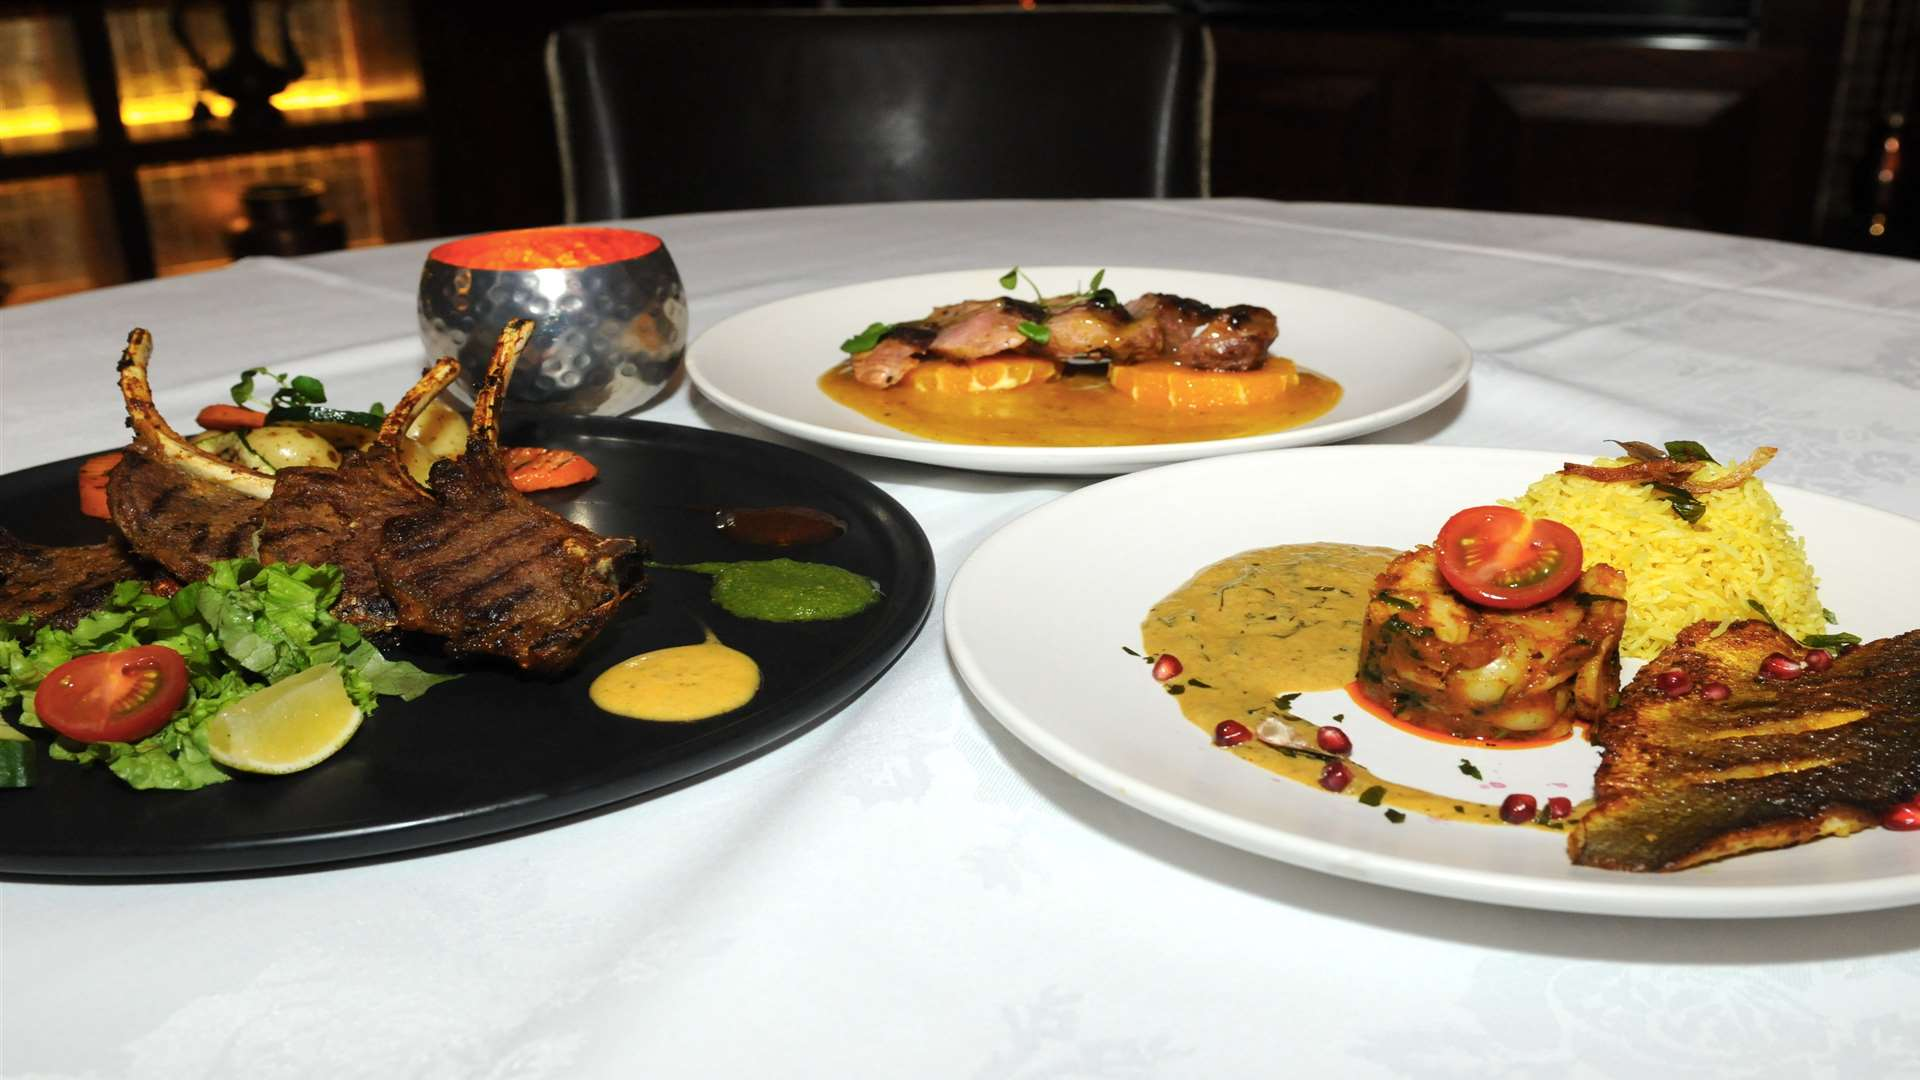 The Shozna menu is packed with tempting Indian and Bangladeshi dishes